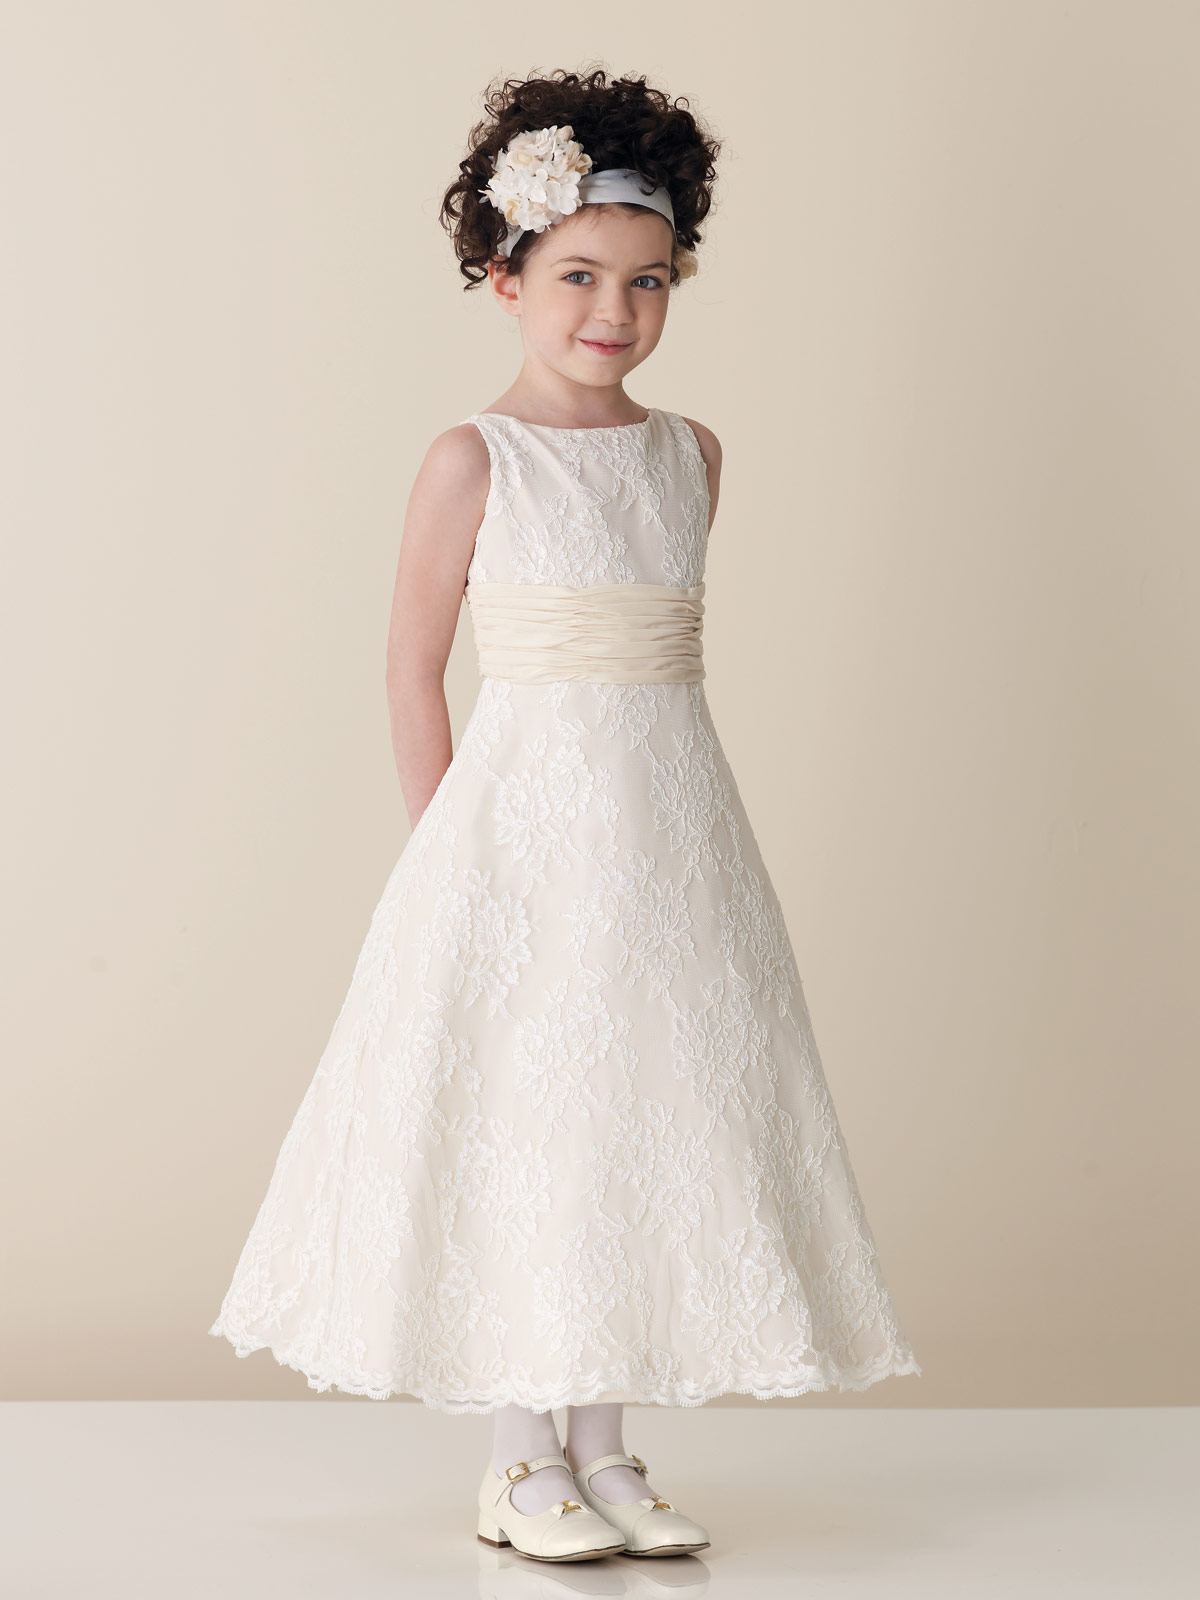 Free wedding kids wedding dresses for Flower girls wedding dress